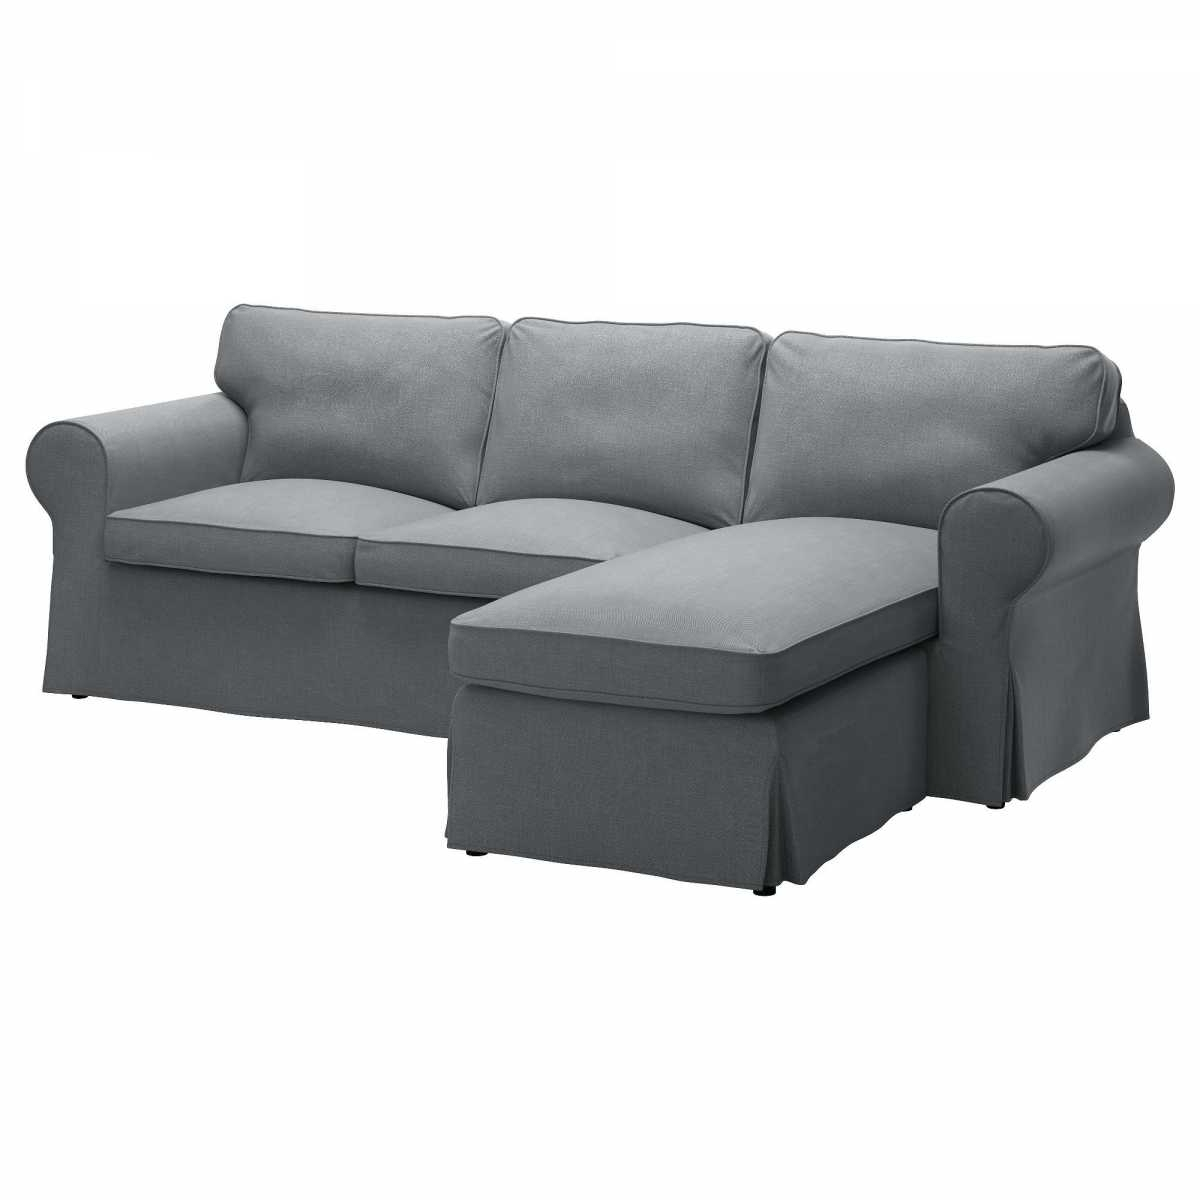 Latest Loveseats With Chaise Lounge Intended For Loveseat : Chaise Loveseat New Small Loveseat With Chaise Lounge (View 6 of 15)